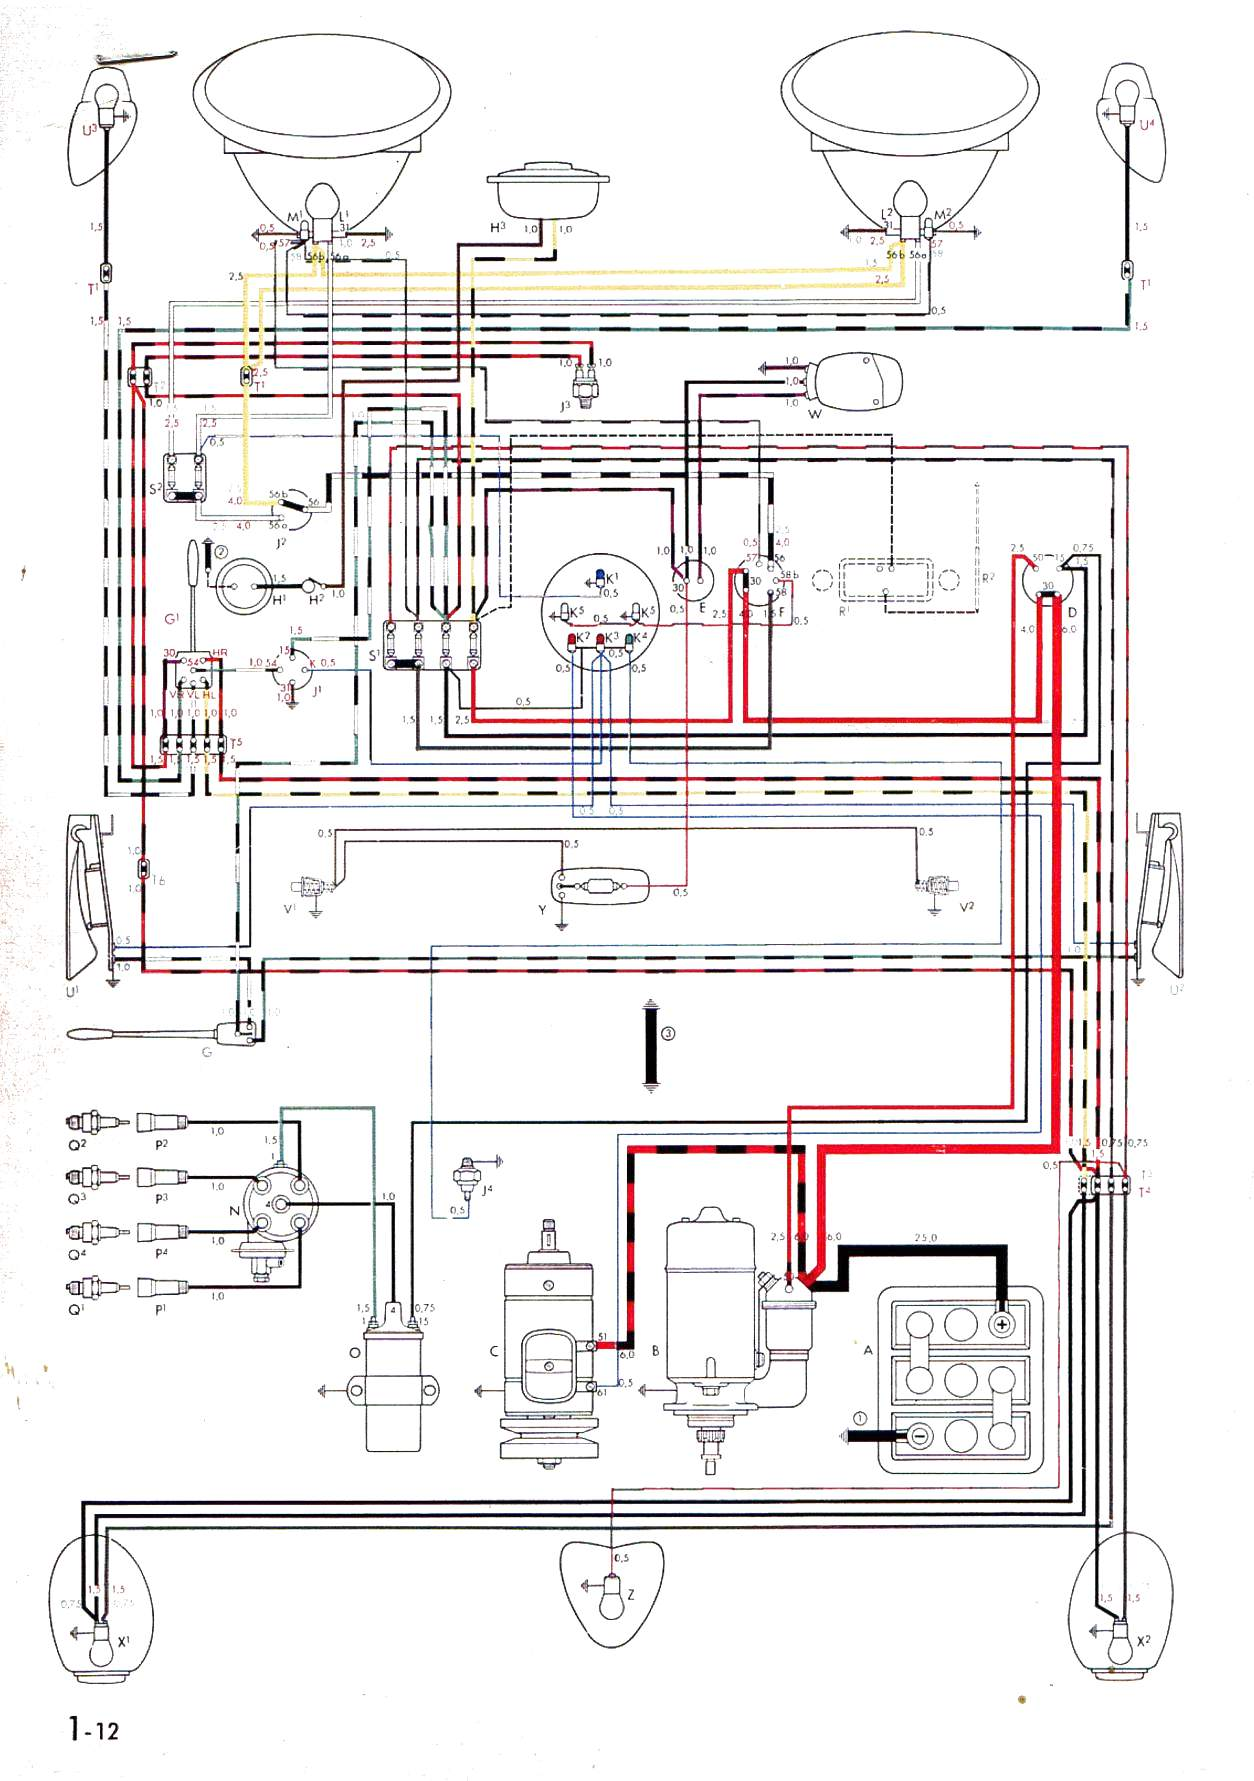 1978 Vw Super Beetle Wiring Diagram vw bug turn signal ... Vw Beetle Fuel Injection Wiring Diagram on